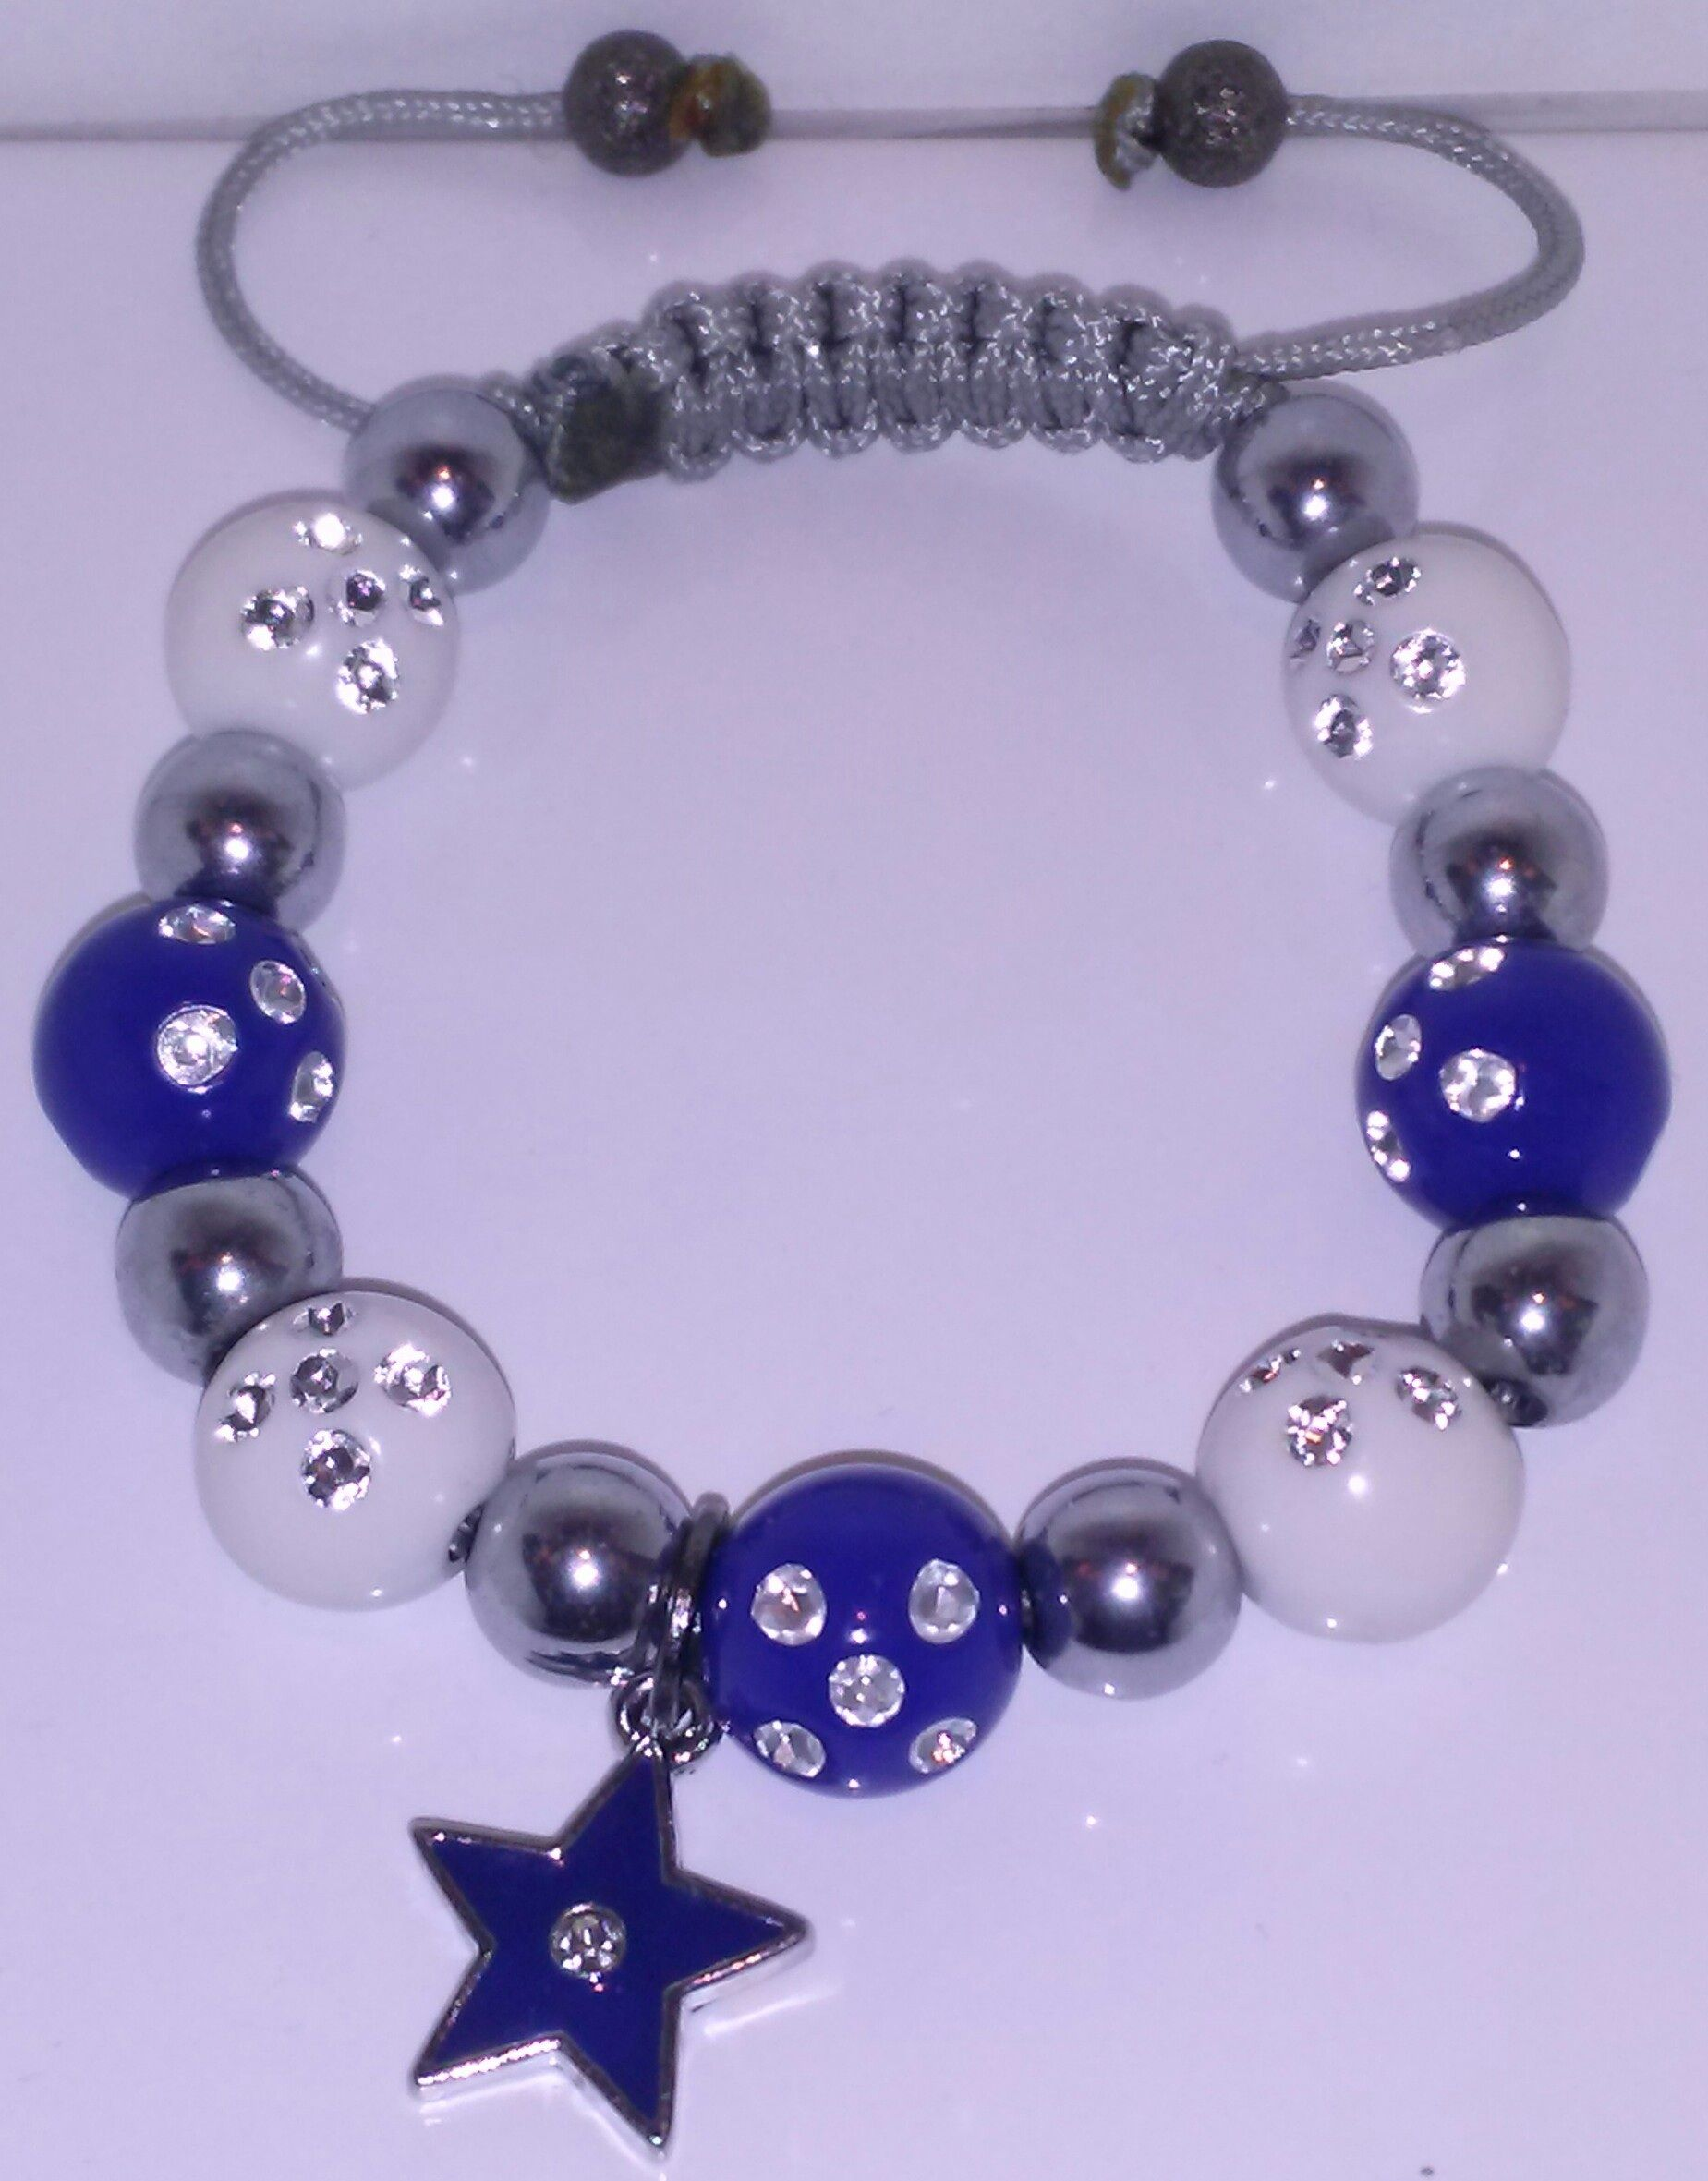 Dallas Cowboys Inspired bracelet  Virtually fits to any wrist size Web: bijoubynija.com Facebook: Bijou By Nija